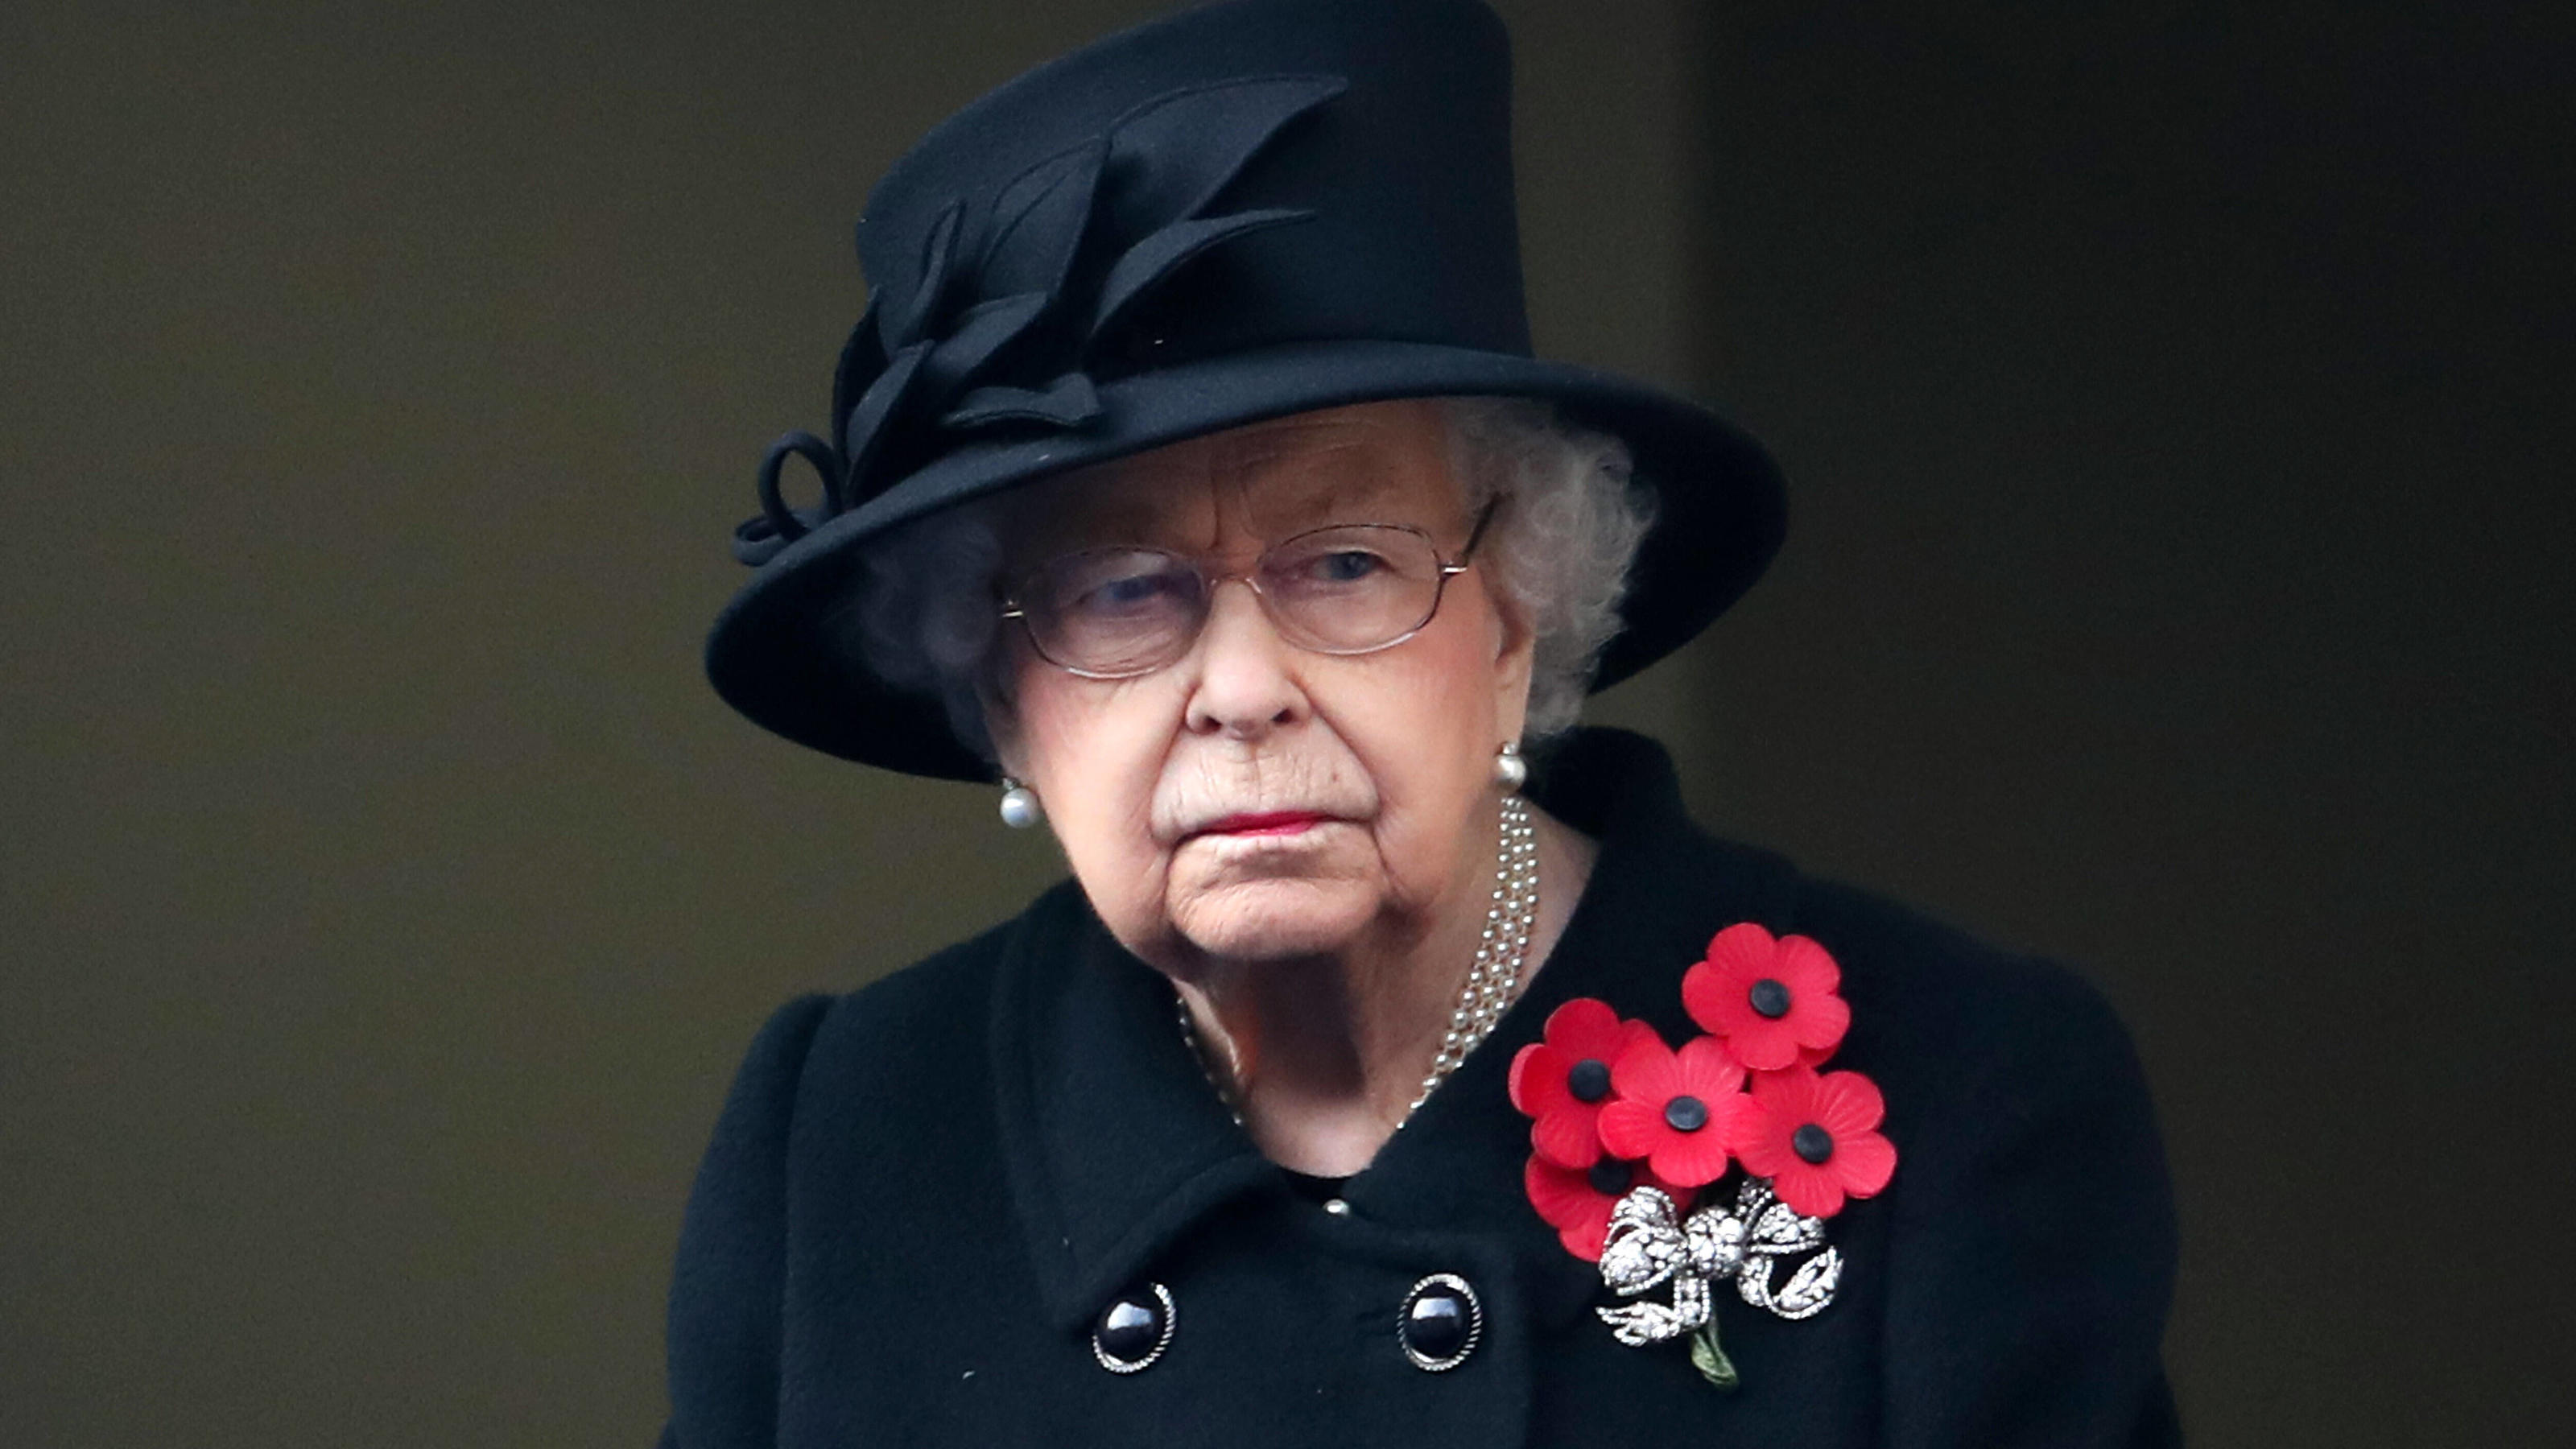 . 08/11/2020. London, United Kingdom. Queen Elizabeth II at the Remembrance Sunday service at The Cenotaph in London. PUBLICATIONxINxGERxSUIxAUTxHUNxONLY xi-Imagesx IIM-21776-0035